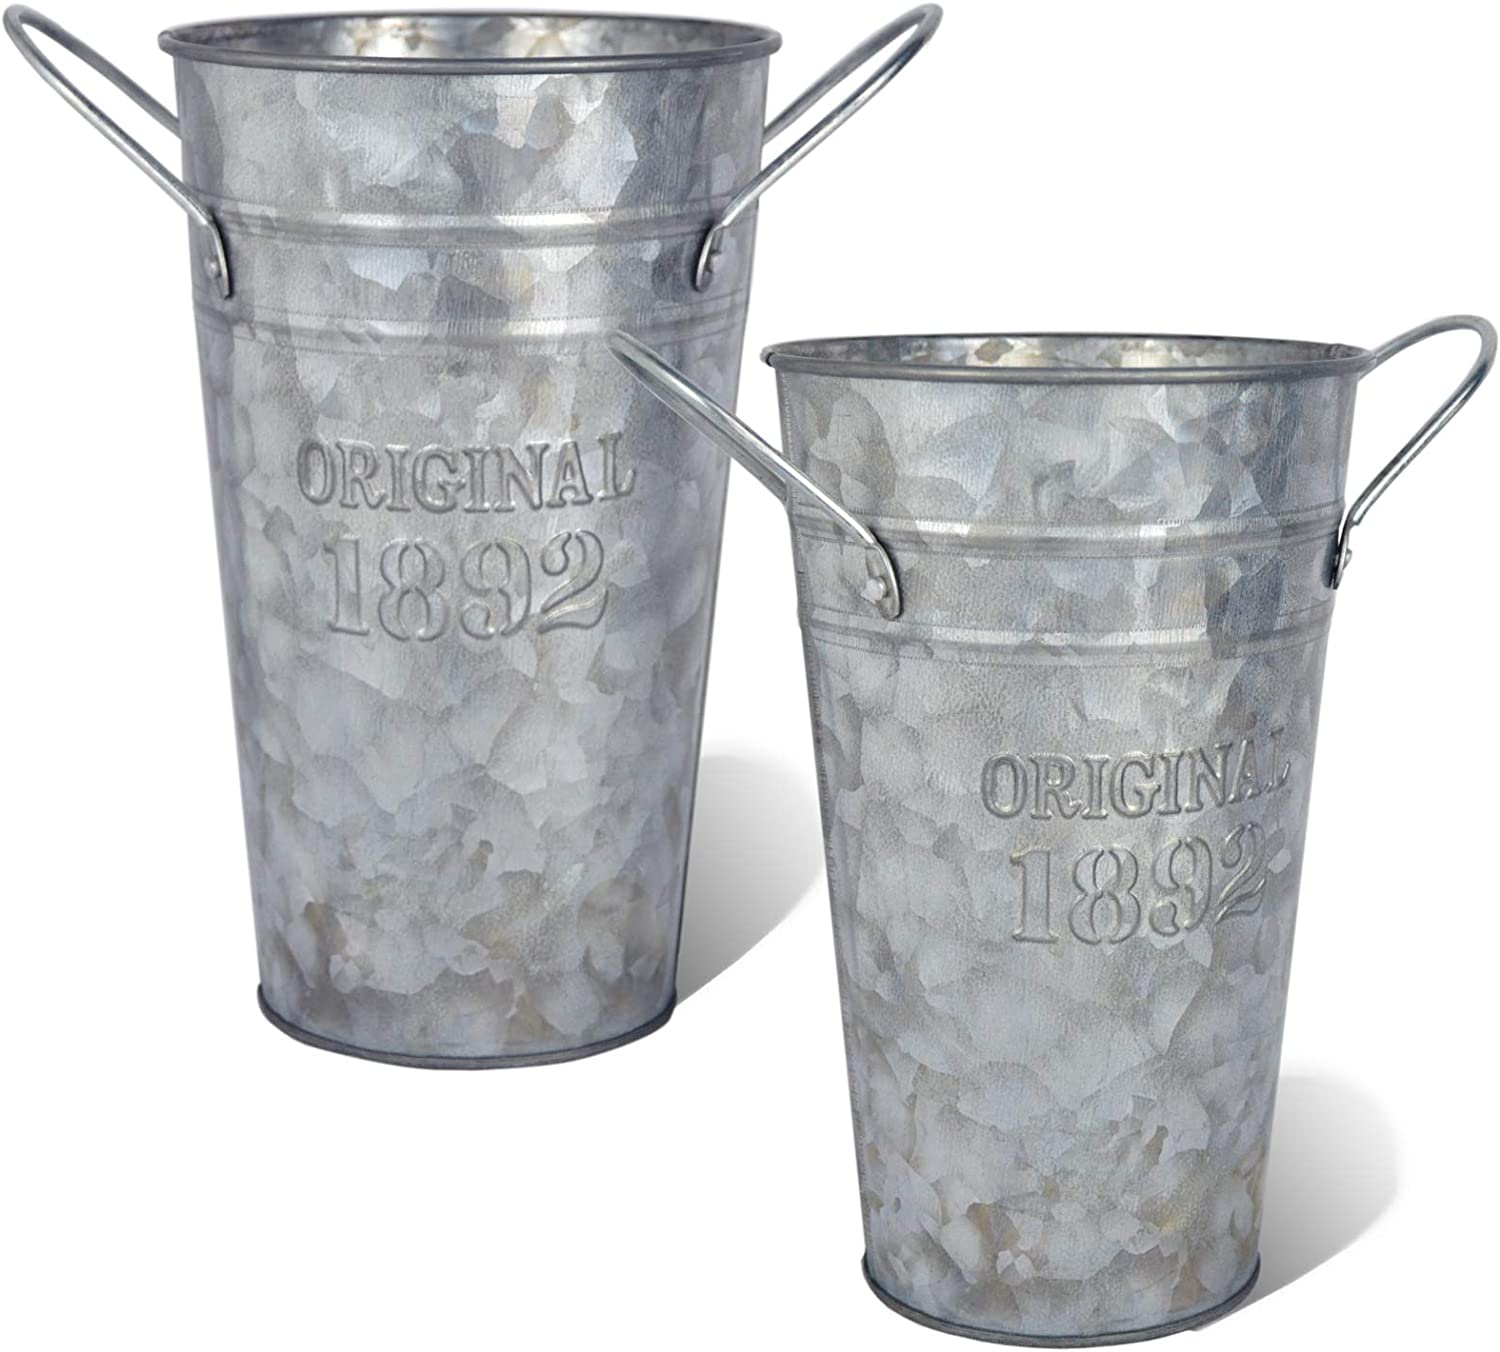 LESEN 8 Inch Rustic Galvanized Metal Flower Vase - Set of 2 - French Bucket - Farmhouse Decorative Vases for Fresh Flowers and Dried Floral Arrangements Home Decor